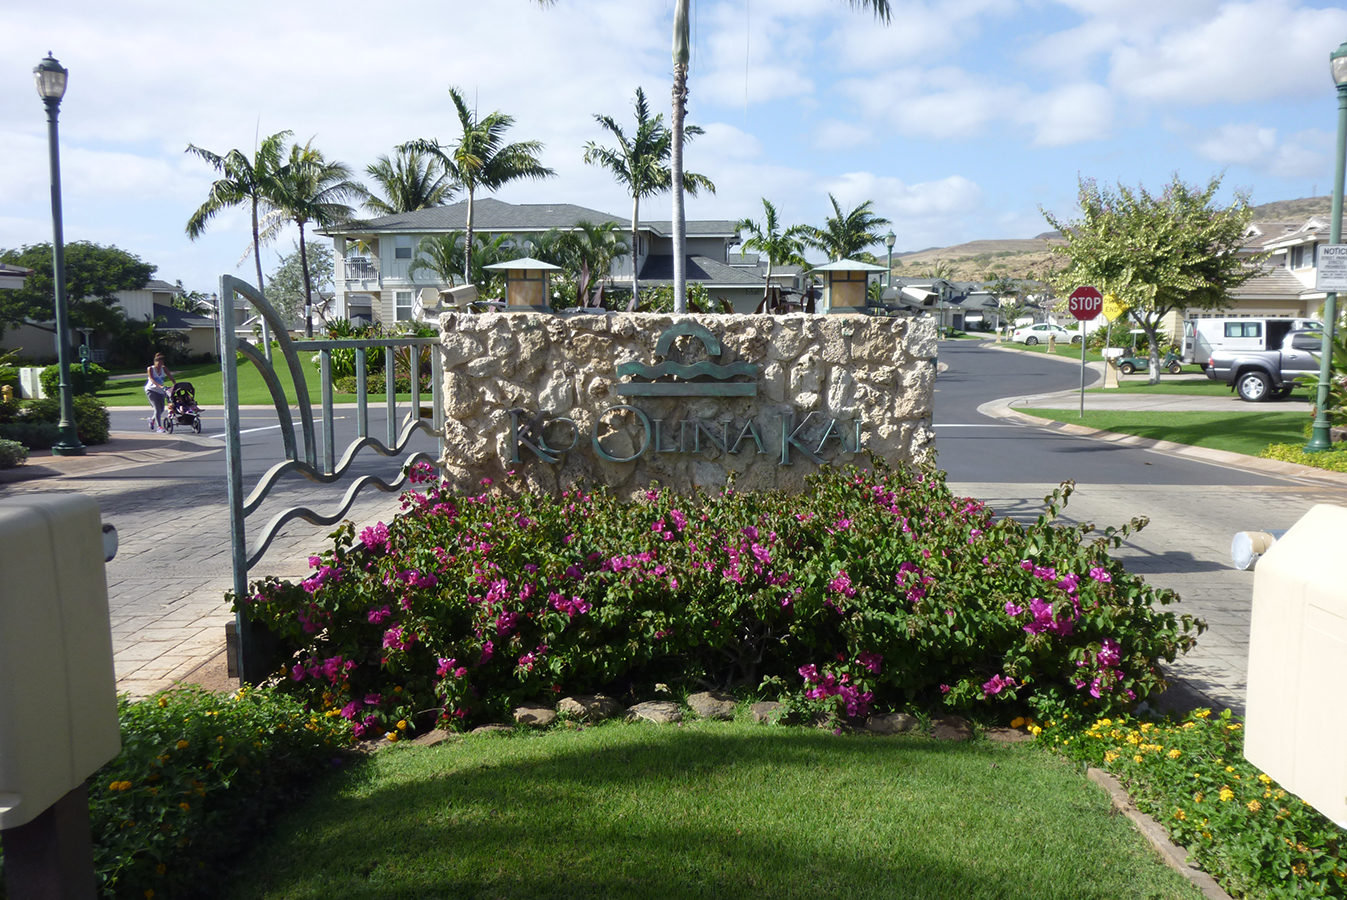 Front entrance of the Ko Olina Kai